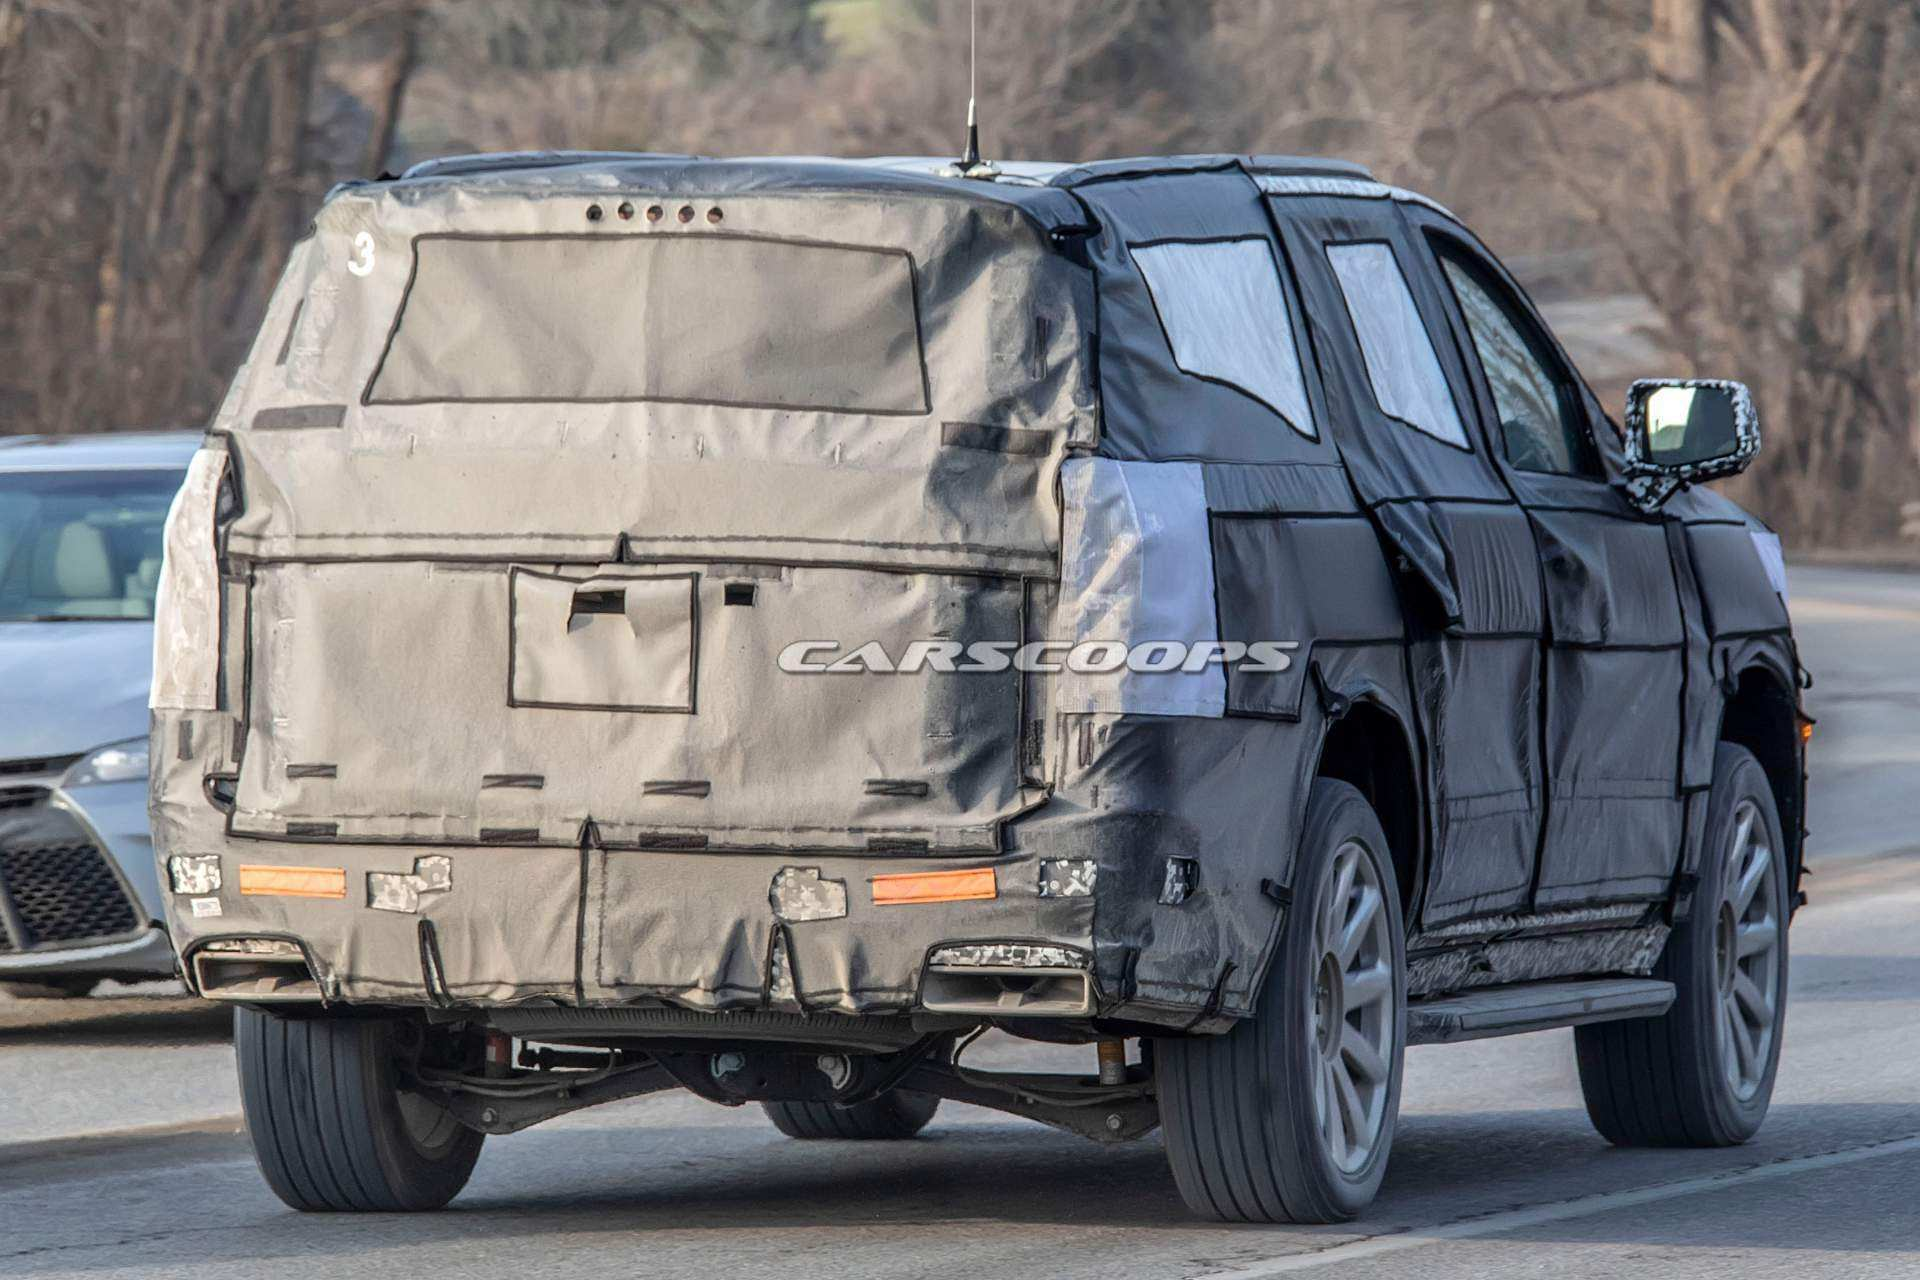 95 The Best 2020 Cadillac Escalade Vsport Price And Review